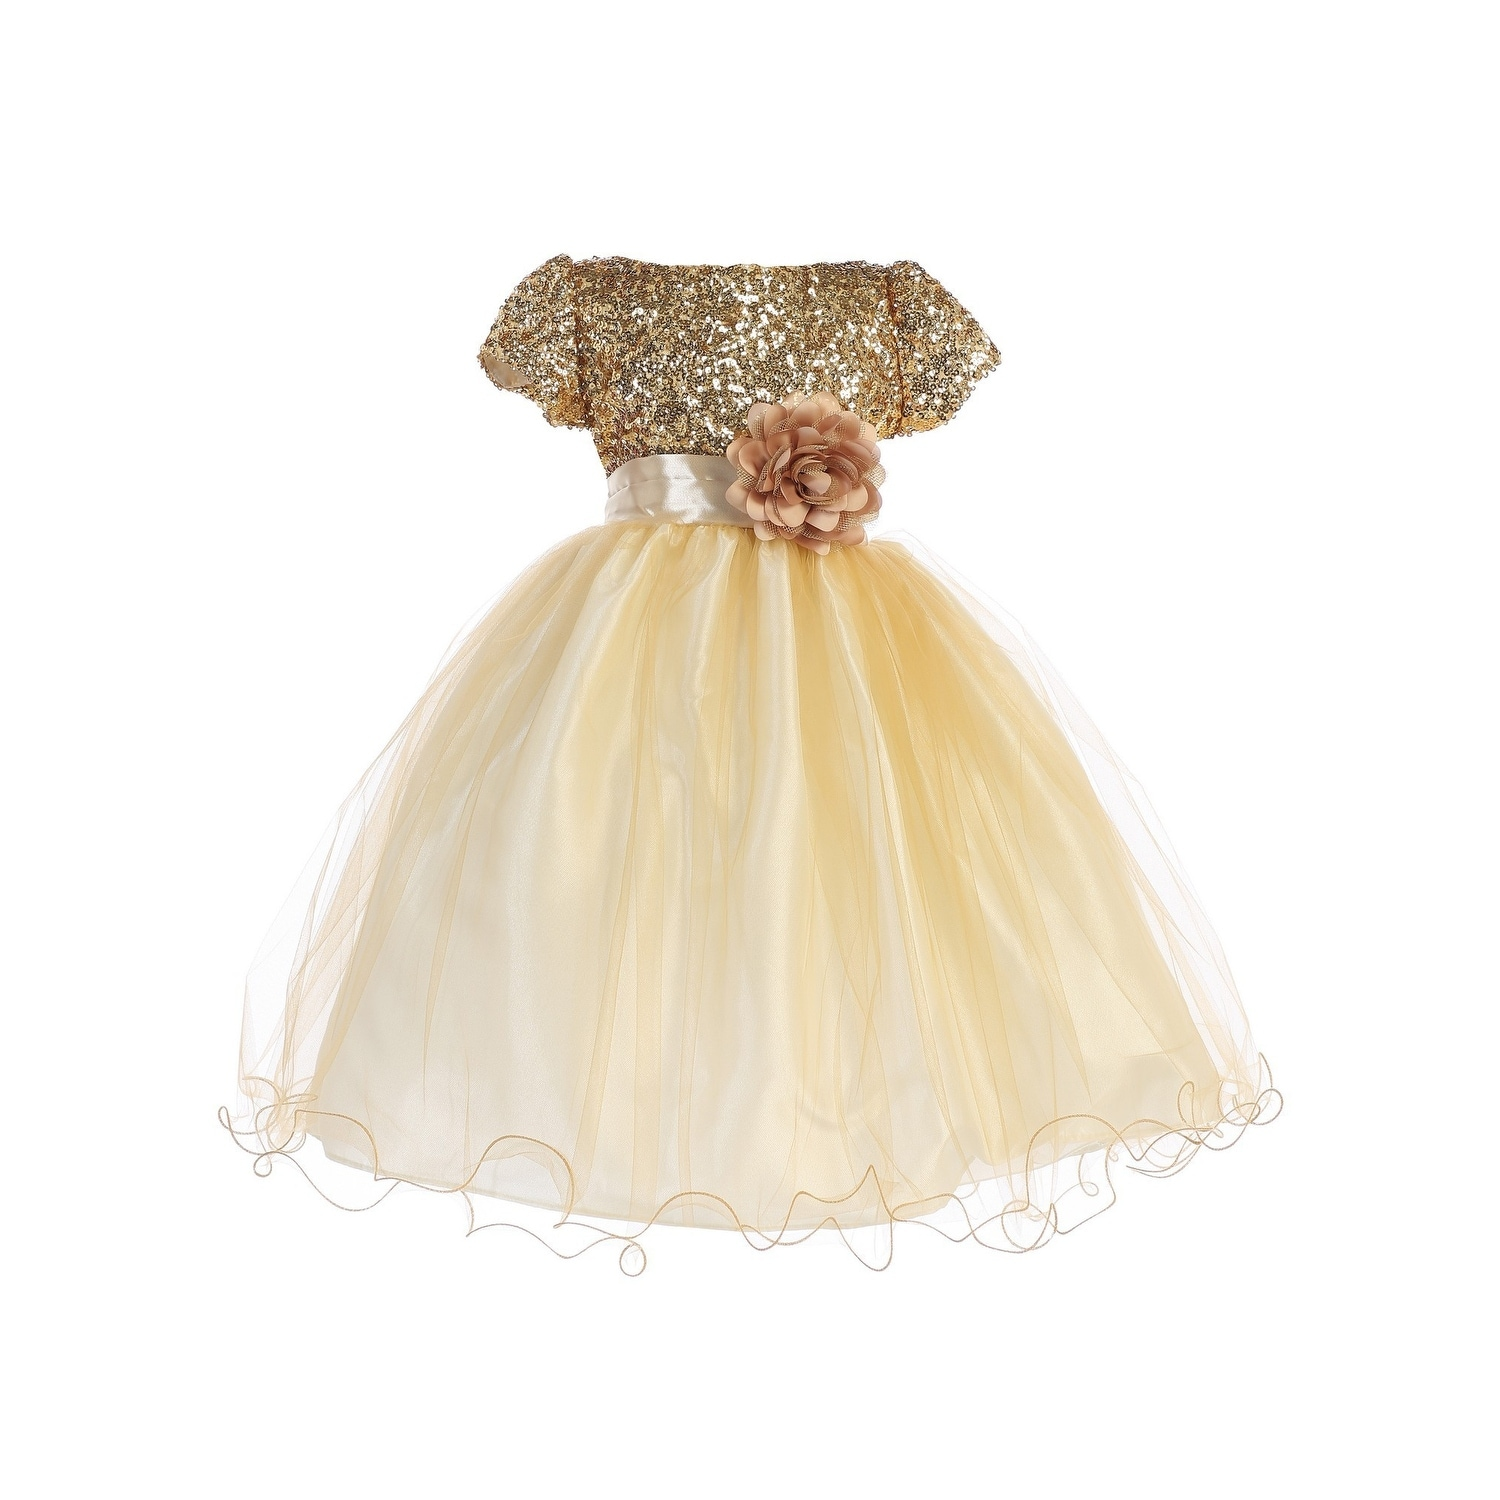 ca3dc474 Gold Sequin Tulle Flower Girl Dress | Saddha